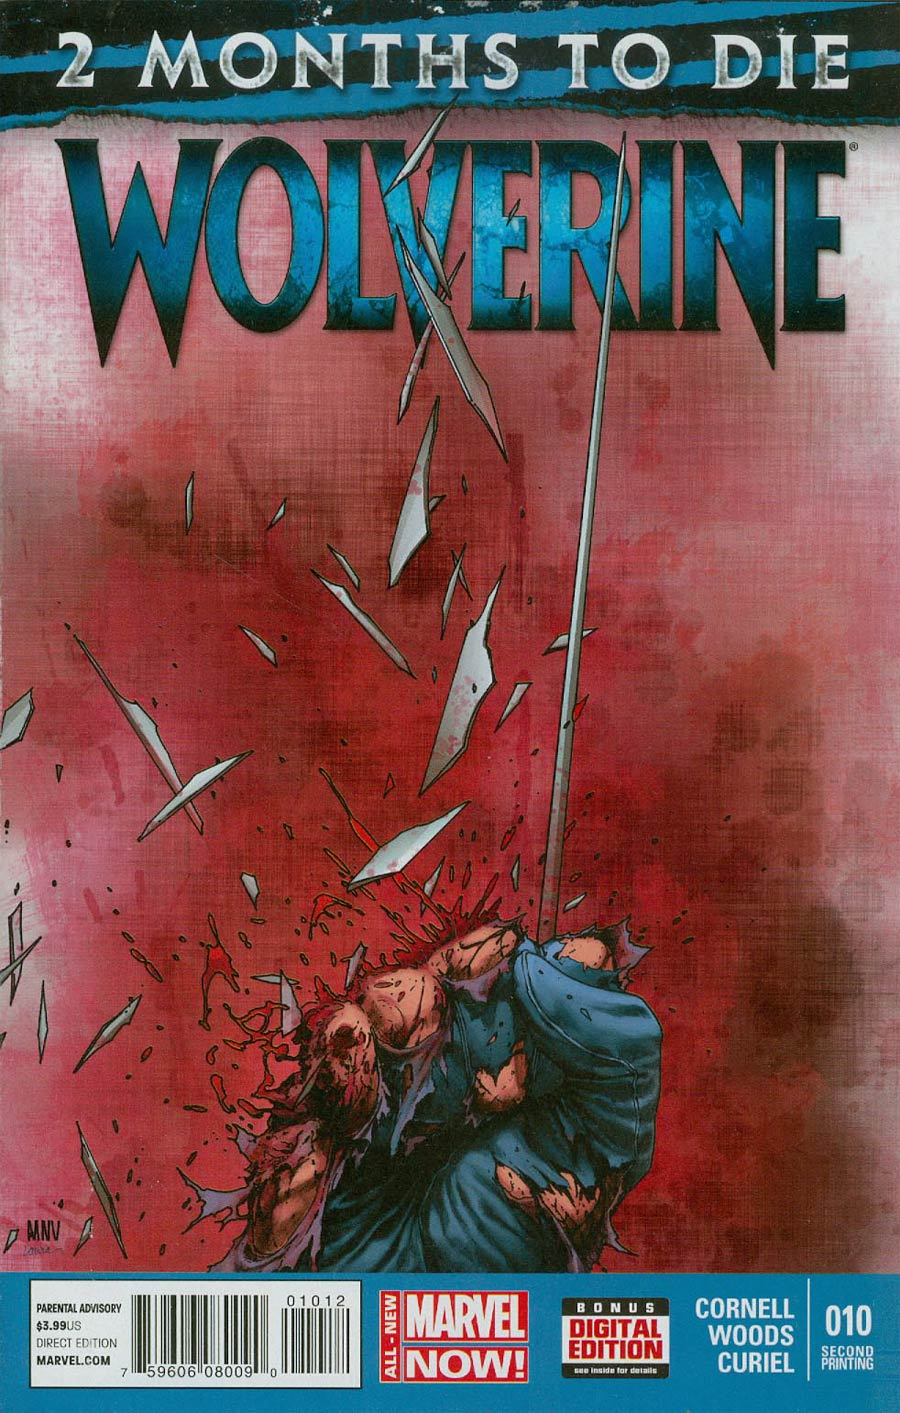 Wolverine Vol 6 #10 Cover C 2nd Ptg Steve McNiven Variant Cover (3 Months To Die Part 3)